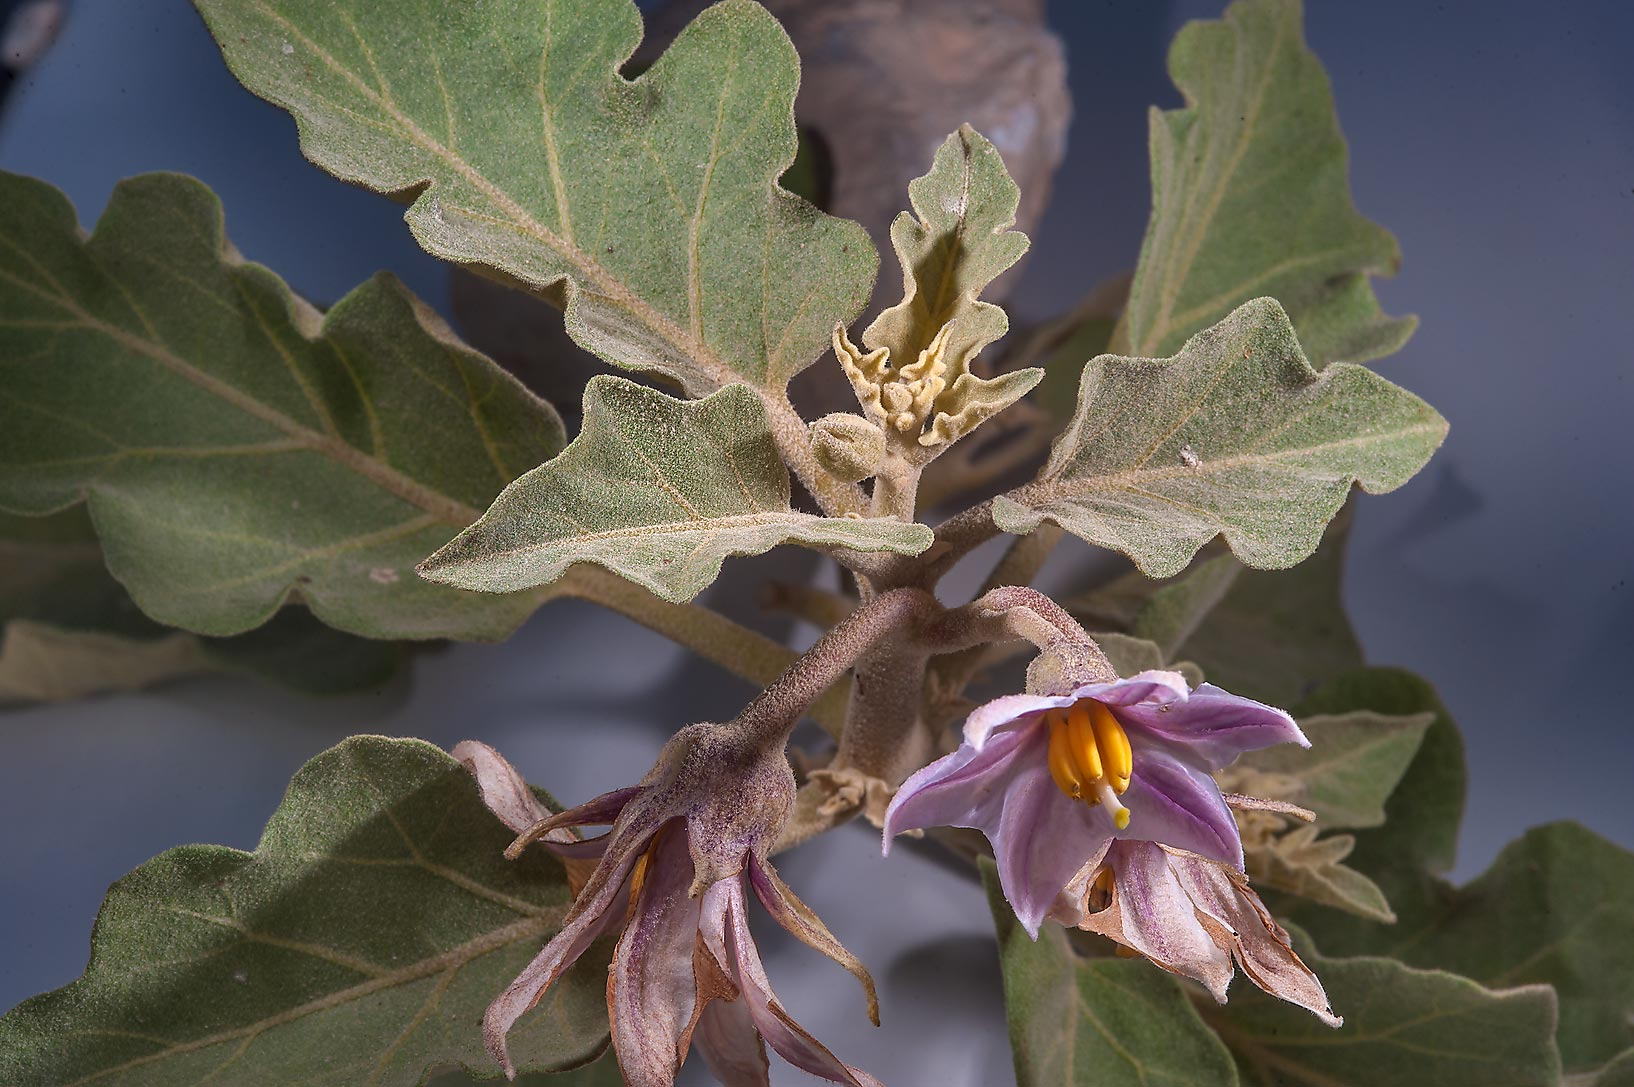 Eggplant (Solanum melongena) with flowers near a...between Mesayeed and Harrarah. Qatar